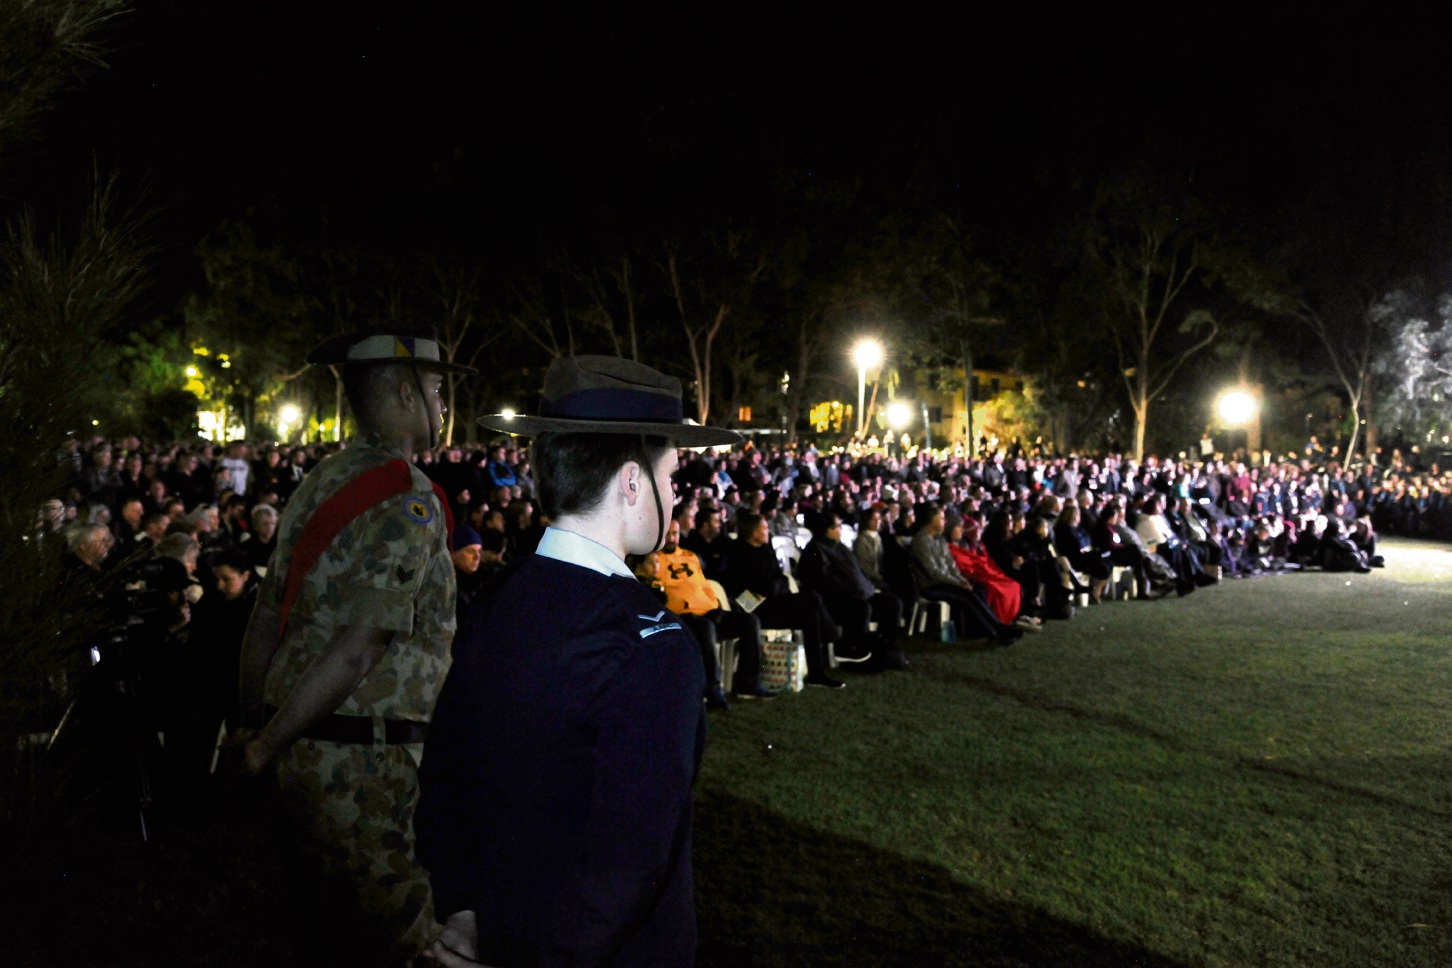 A big crowd that turned out to the Joondalup Dawn service.